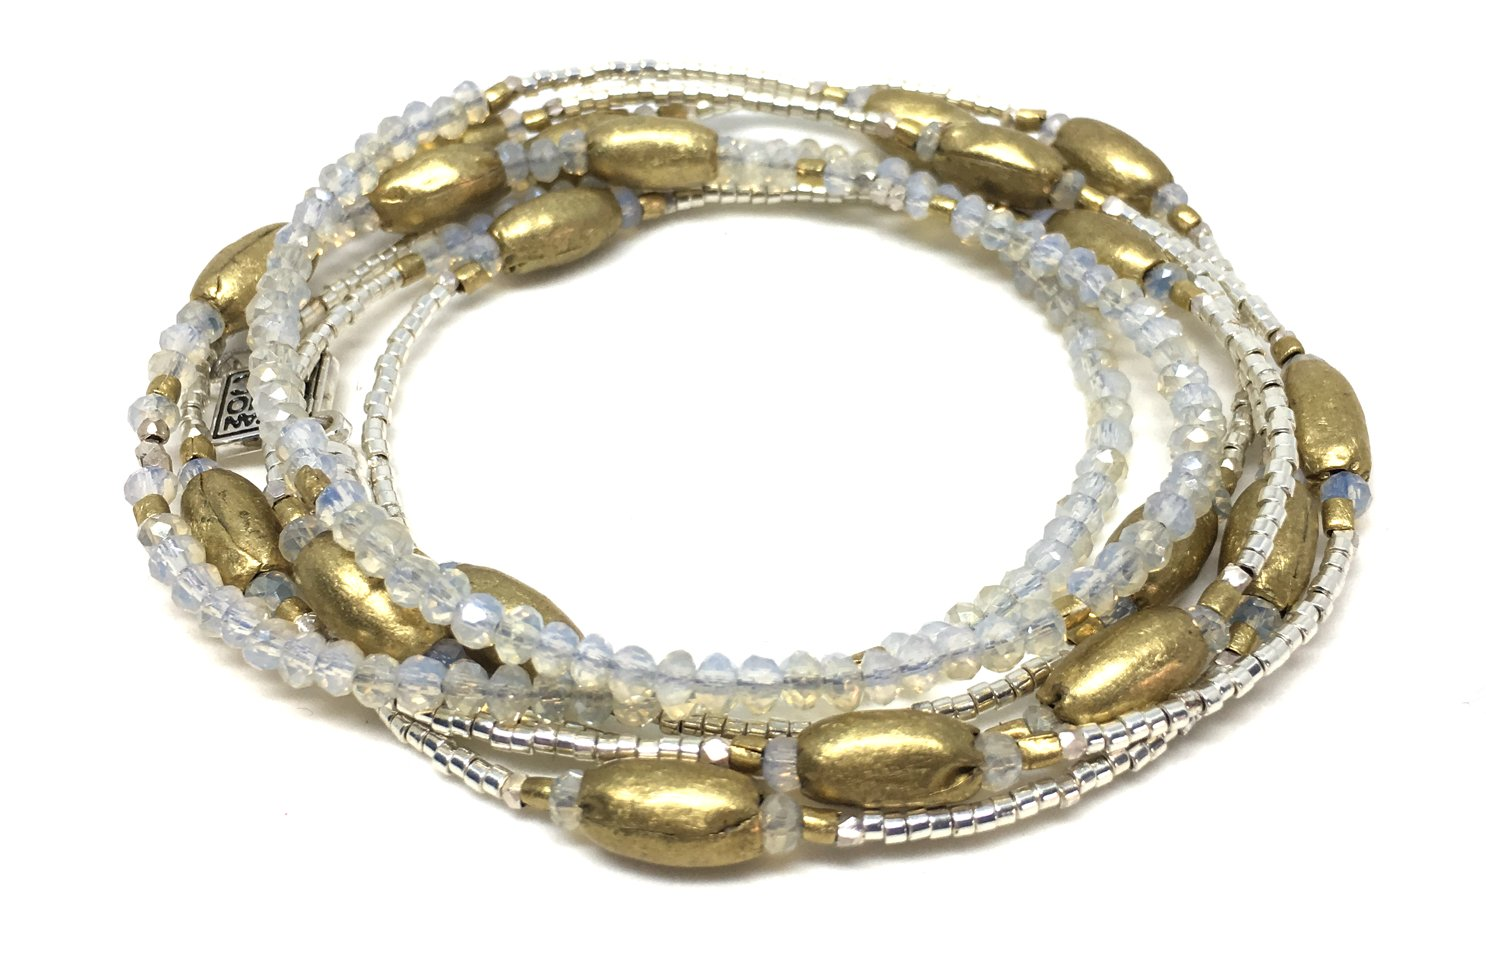 Handmade brass beads, Ethiopia  -Fine Silver handmade by the Karen Hill Tribe, Thailand  -Sterling Silver Plated Glass from Japan  -Glittering glass crystals from China